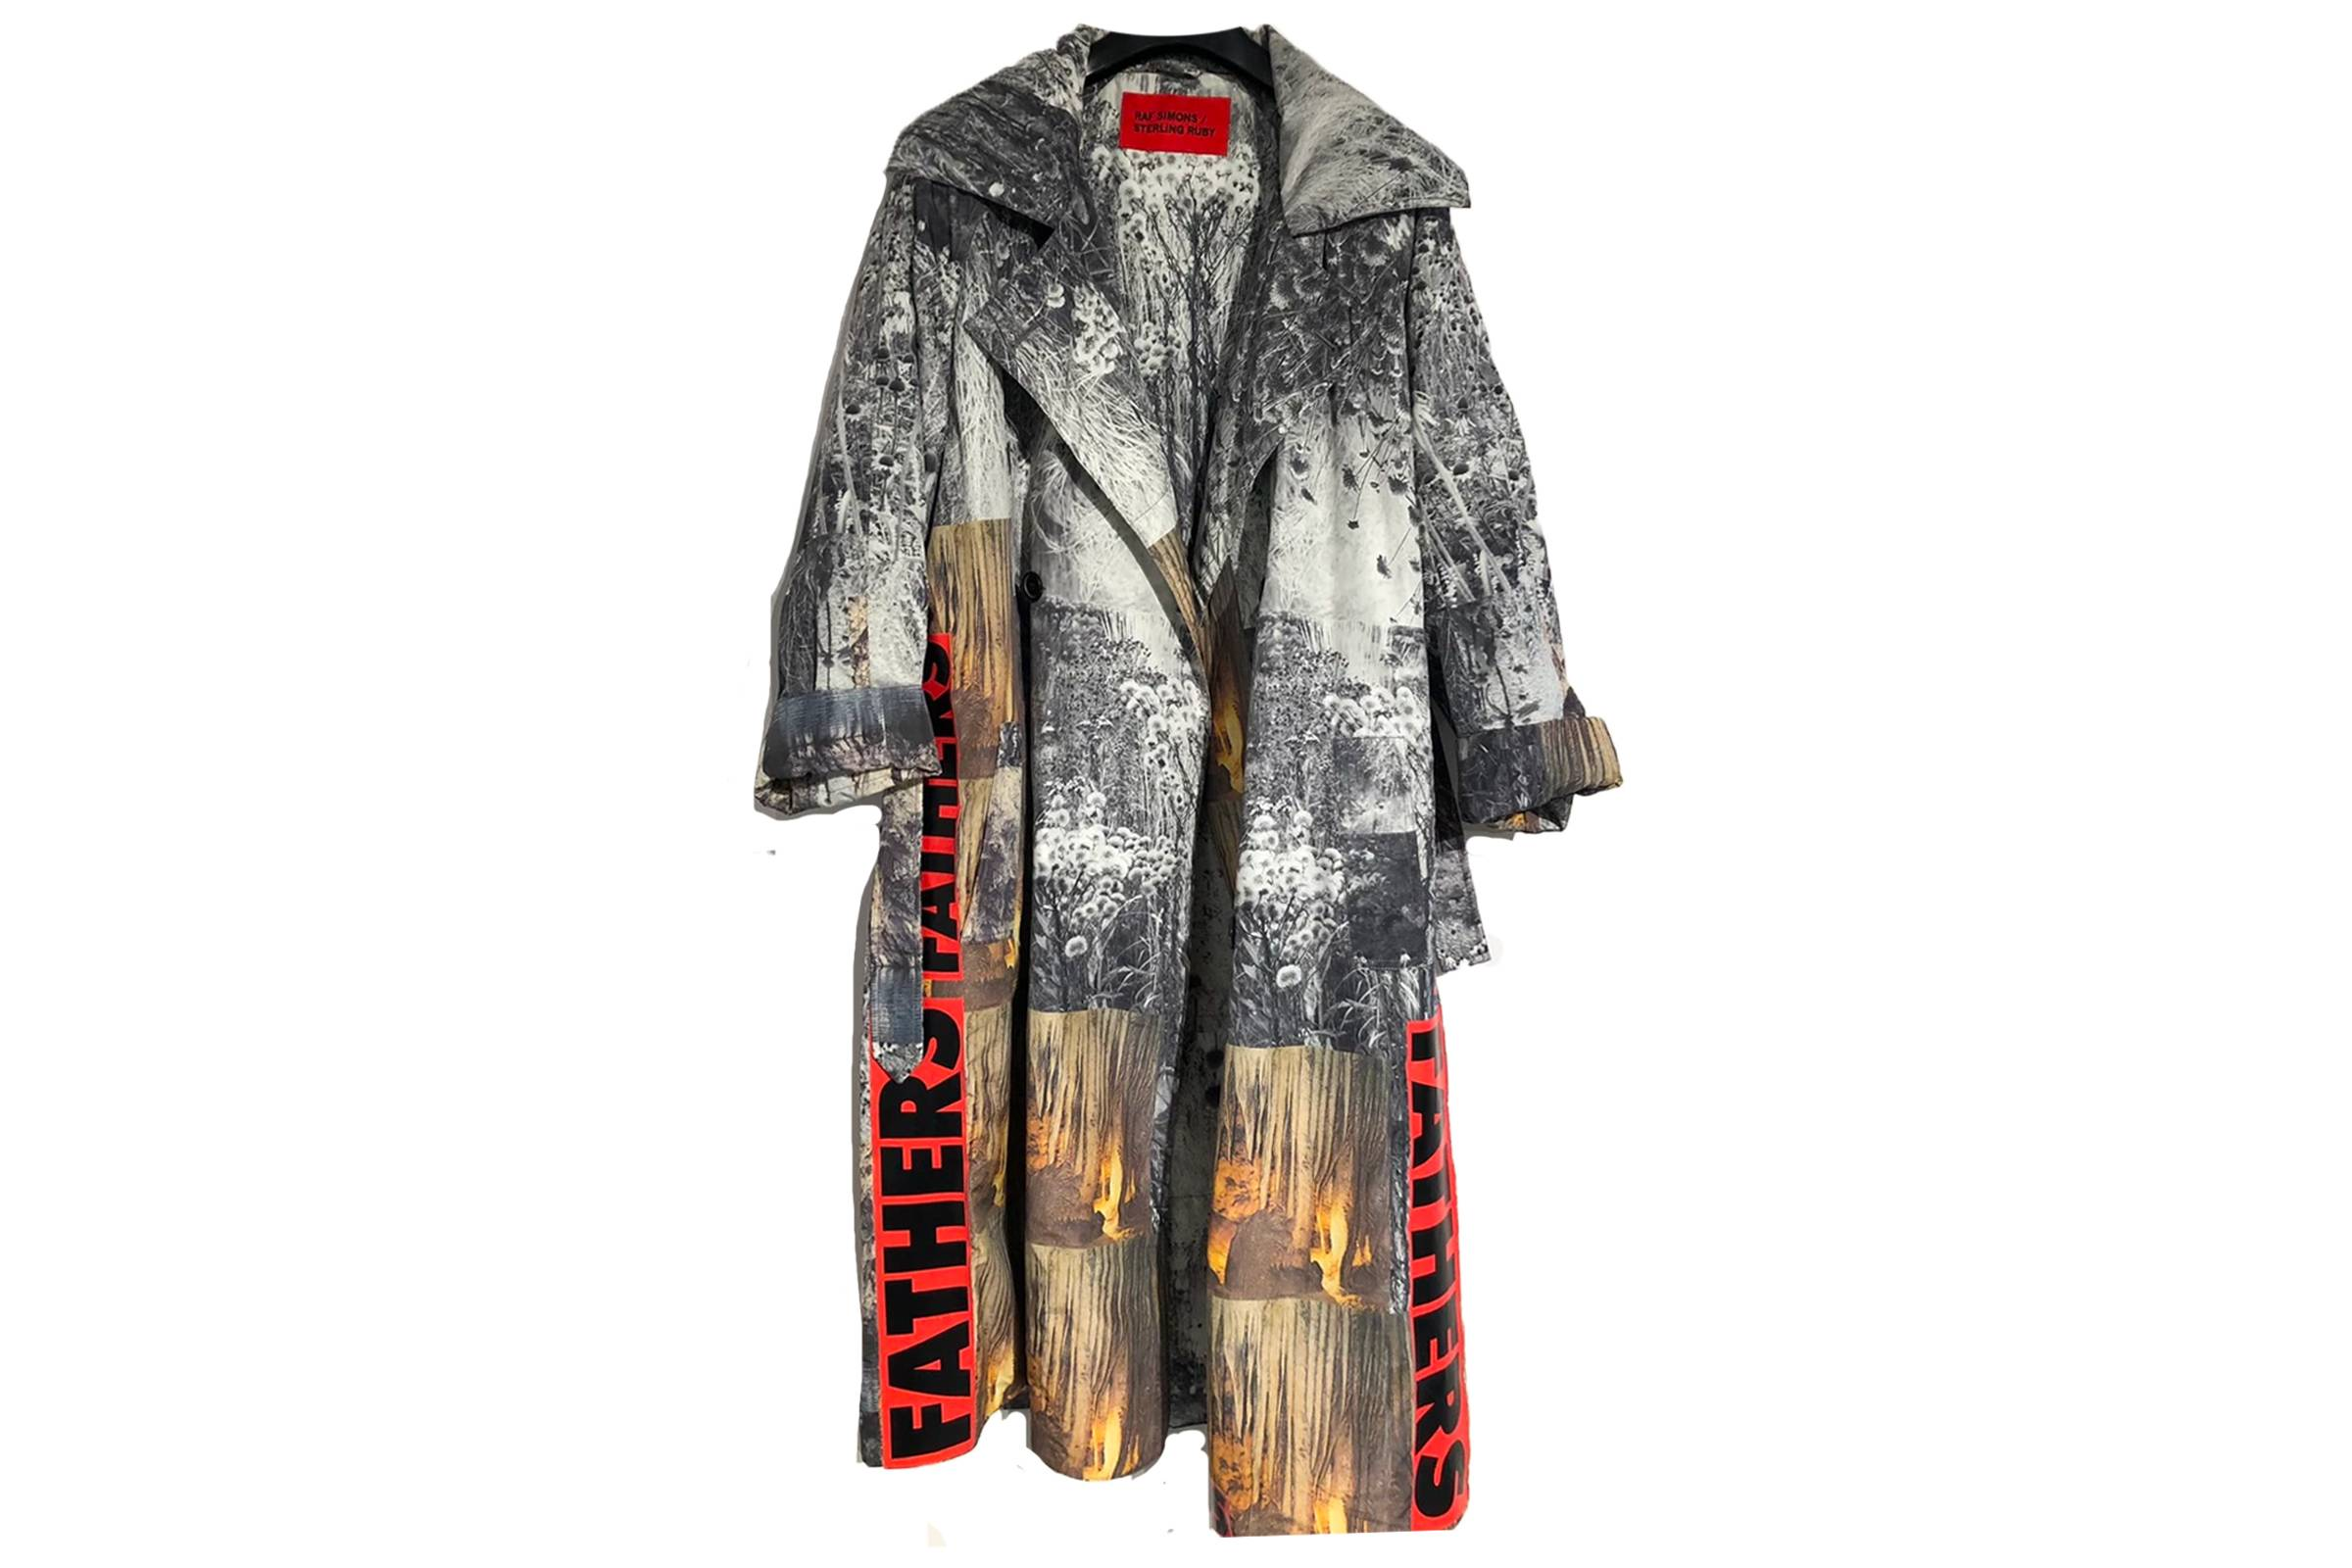 Raf Simons x Sterling Ruby Padded All-Over Print Trench Coat